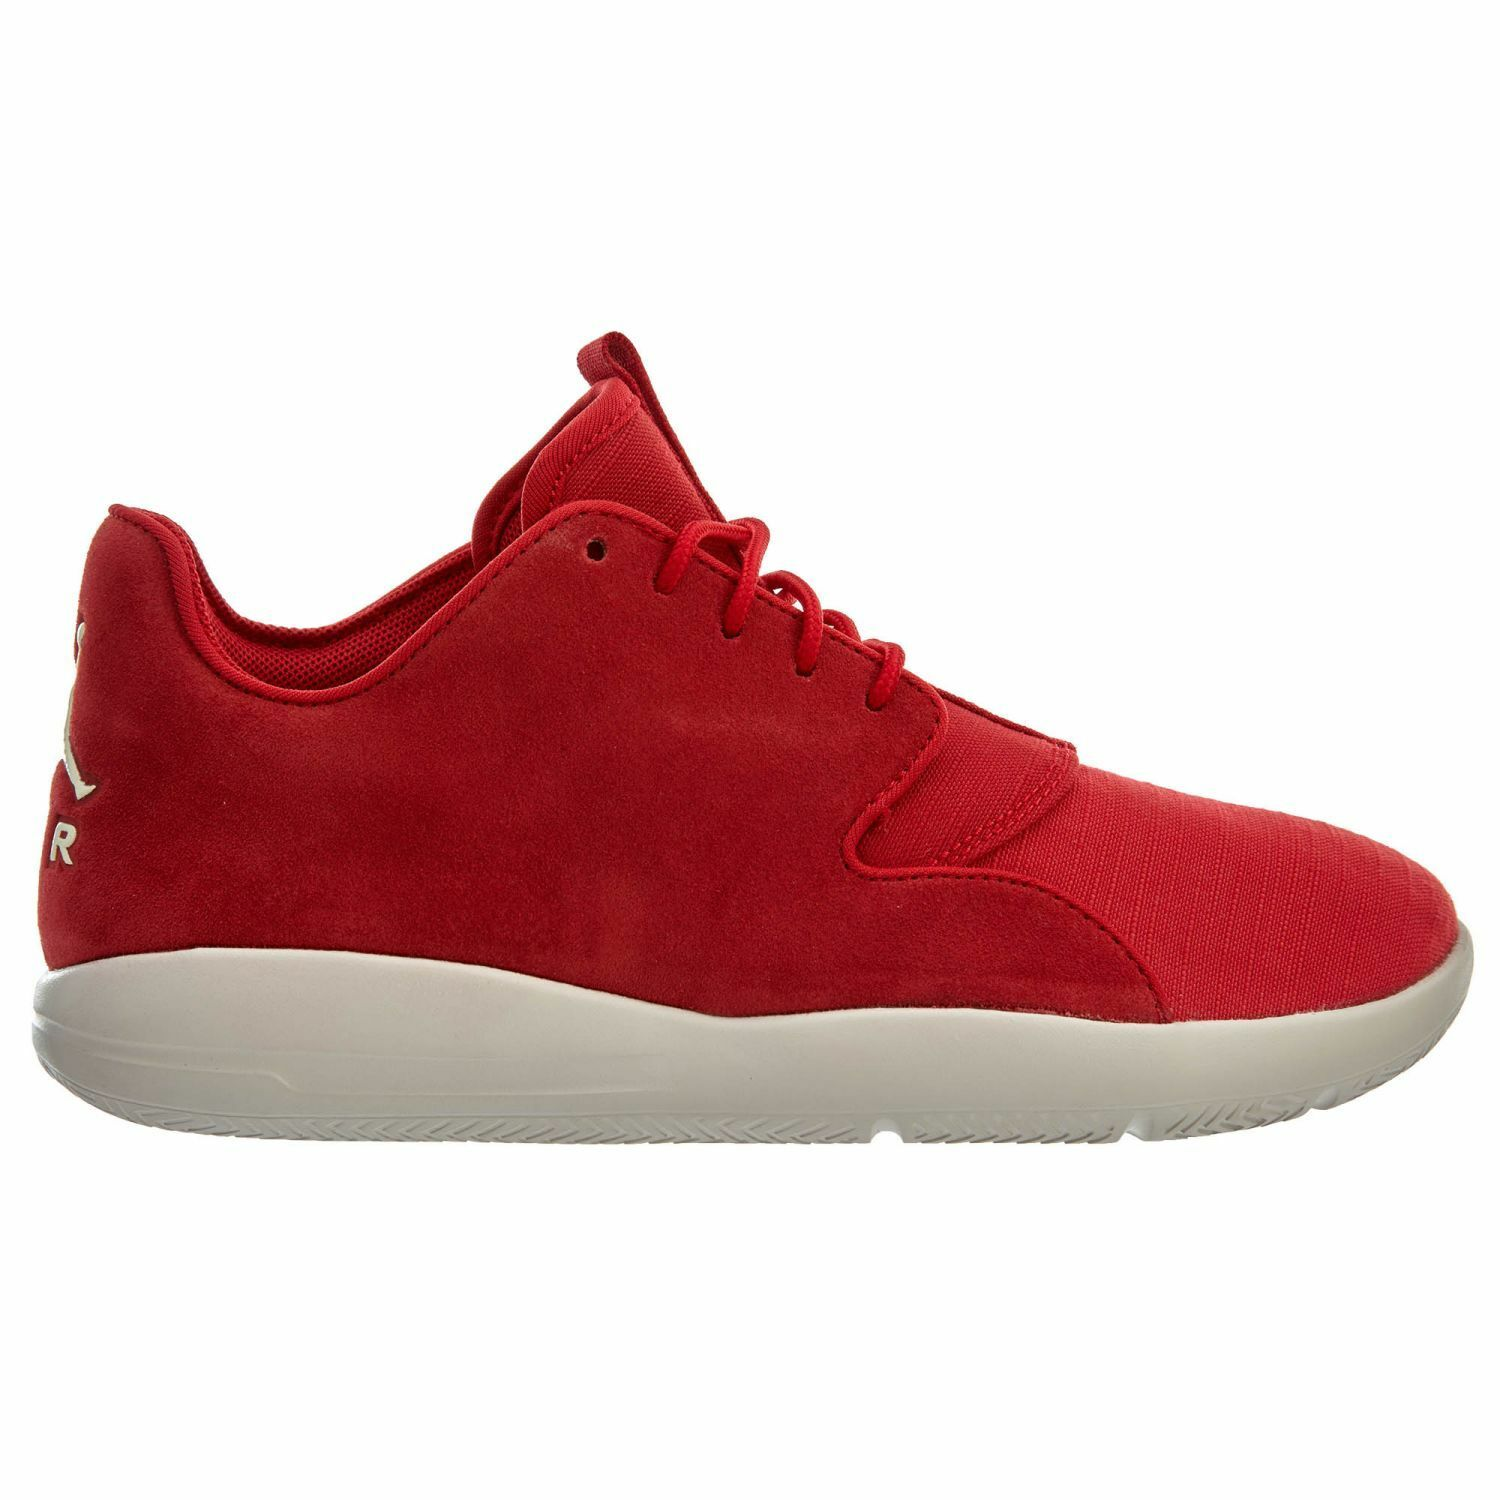 Jordan Eclipse Leather Mens 724368-624 Gym Red Orewood Athhletic shoes Size 11